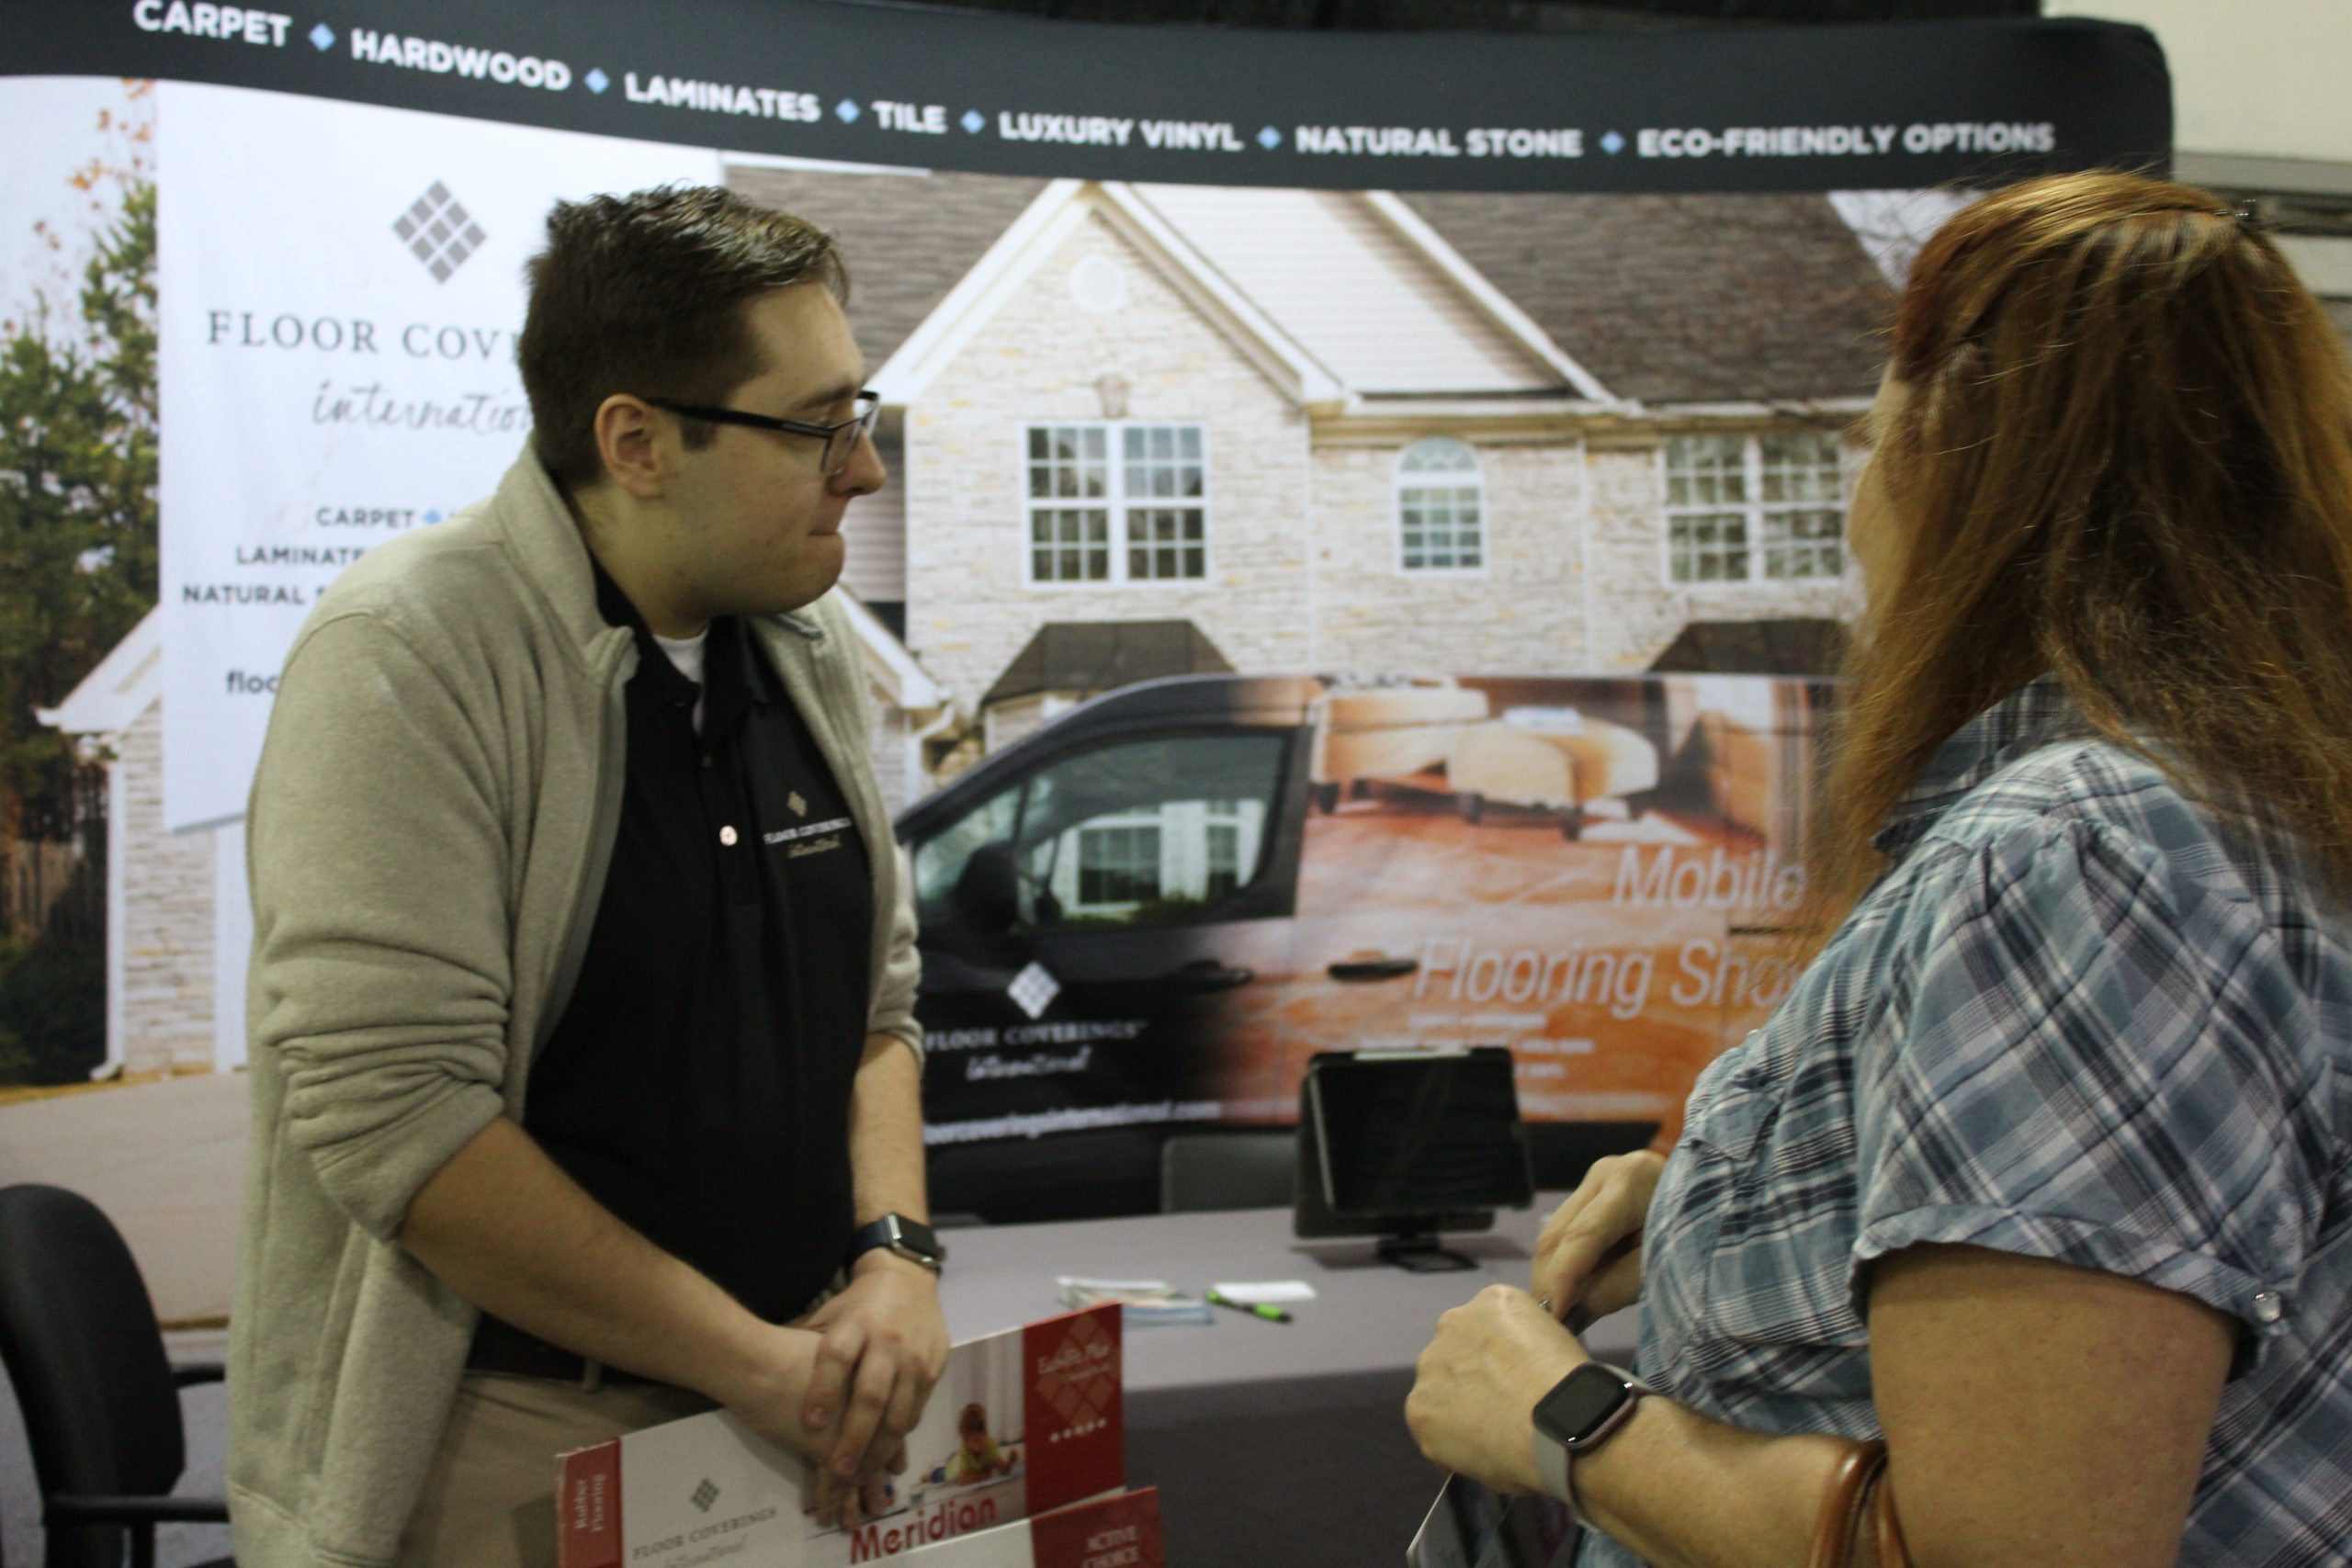 Floor Coverings International at Jacksonville Home & Garden